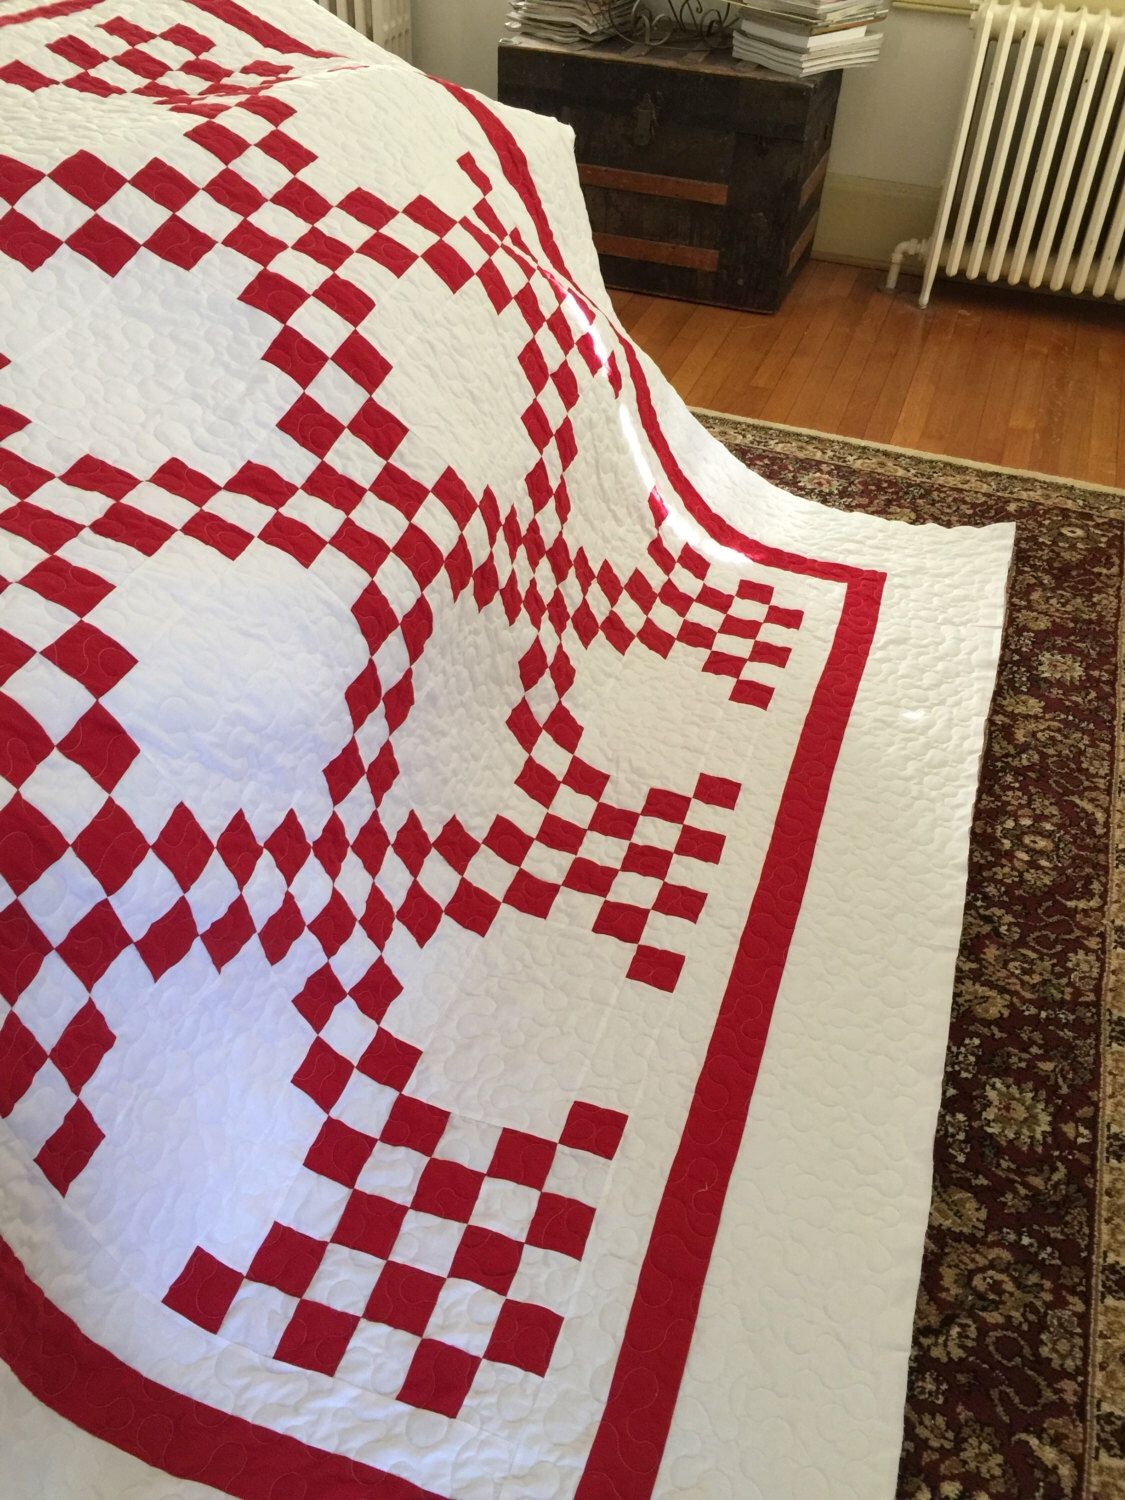 Quilt Double Irish Chain Red And White Quilt Queen Last Border Etsy Red And White Quilts Irish Chain Quilt Irish Chain Quilt Pattern